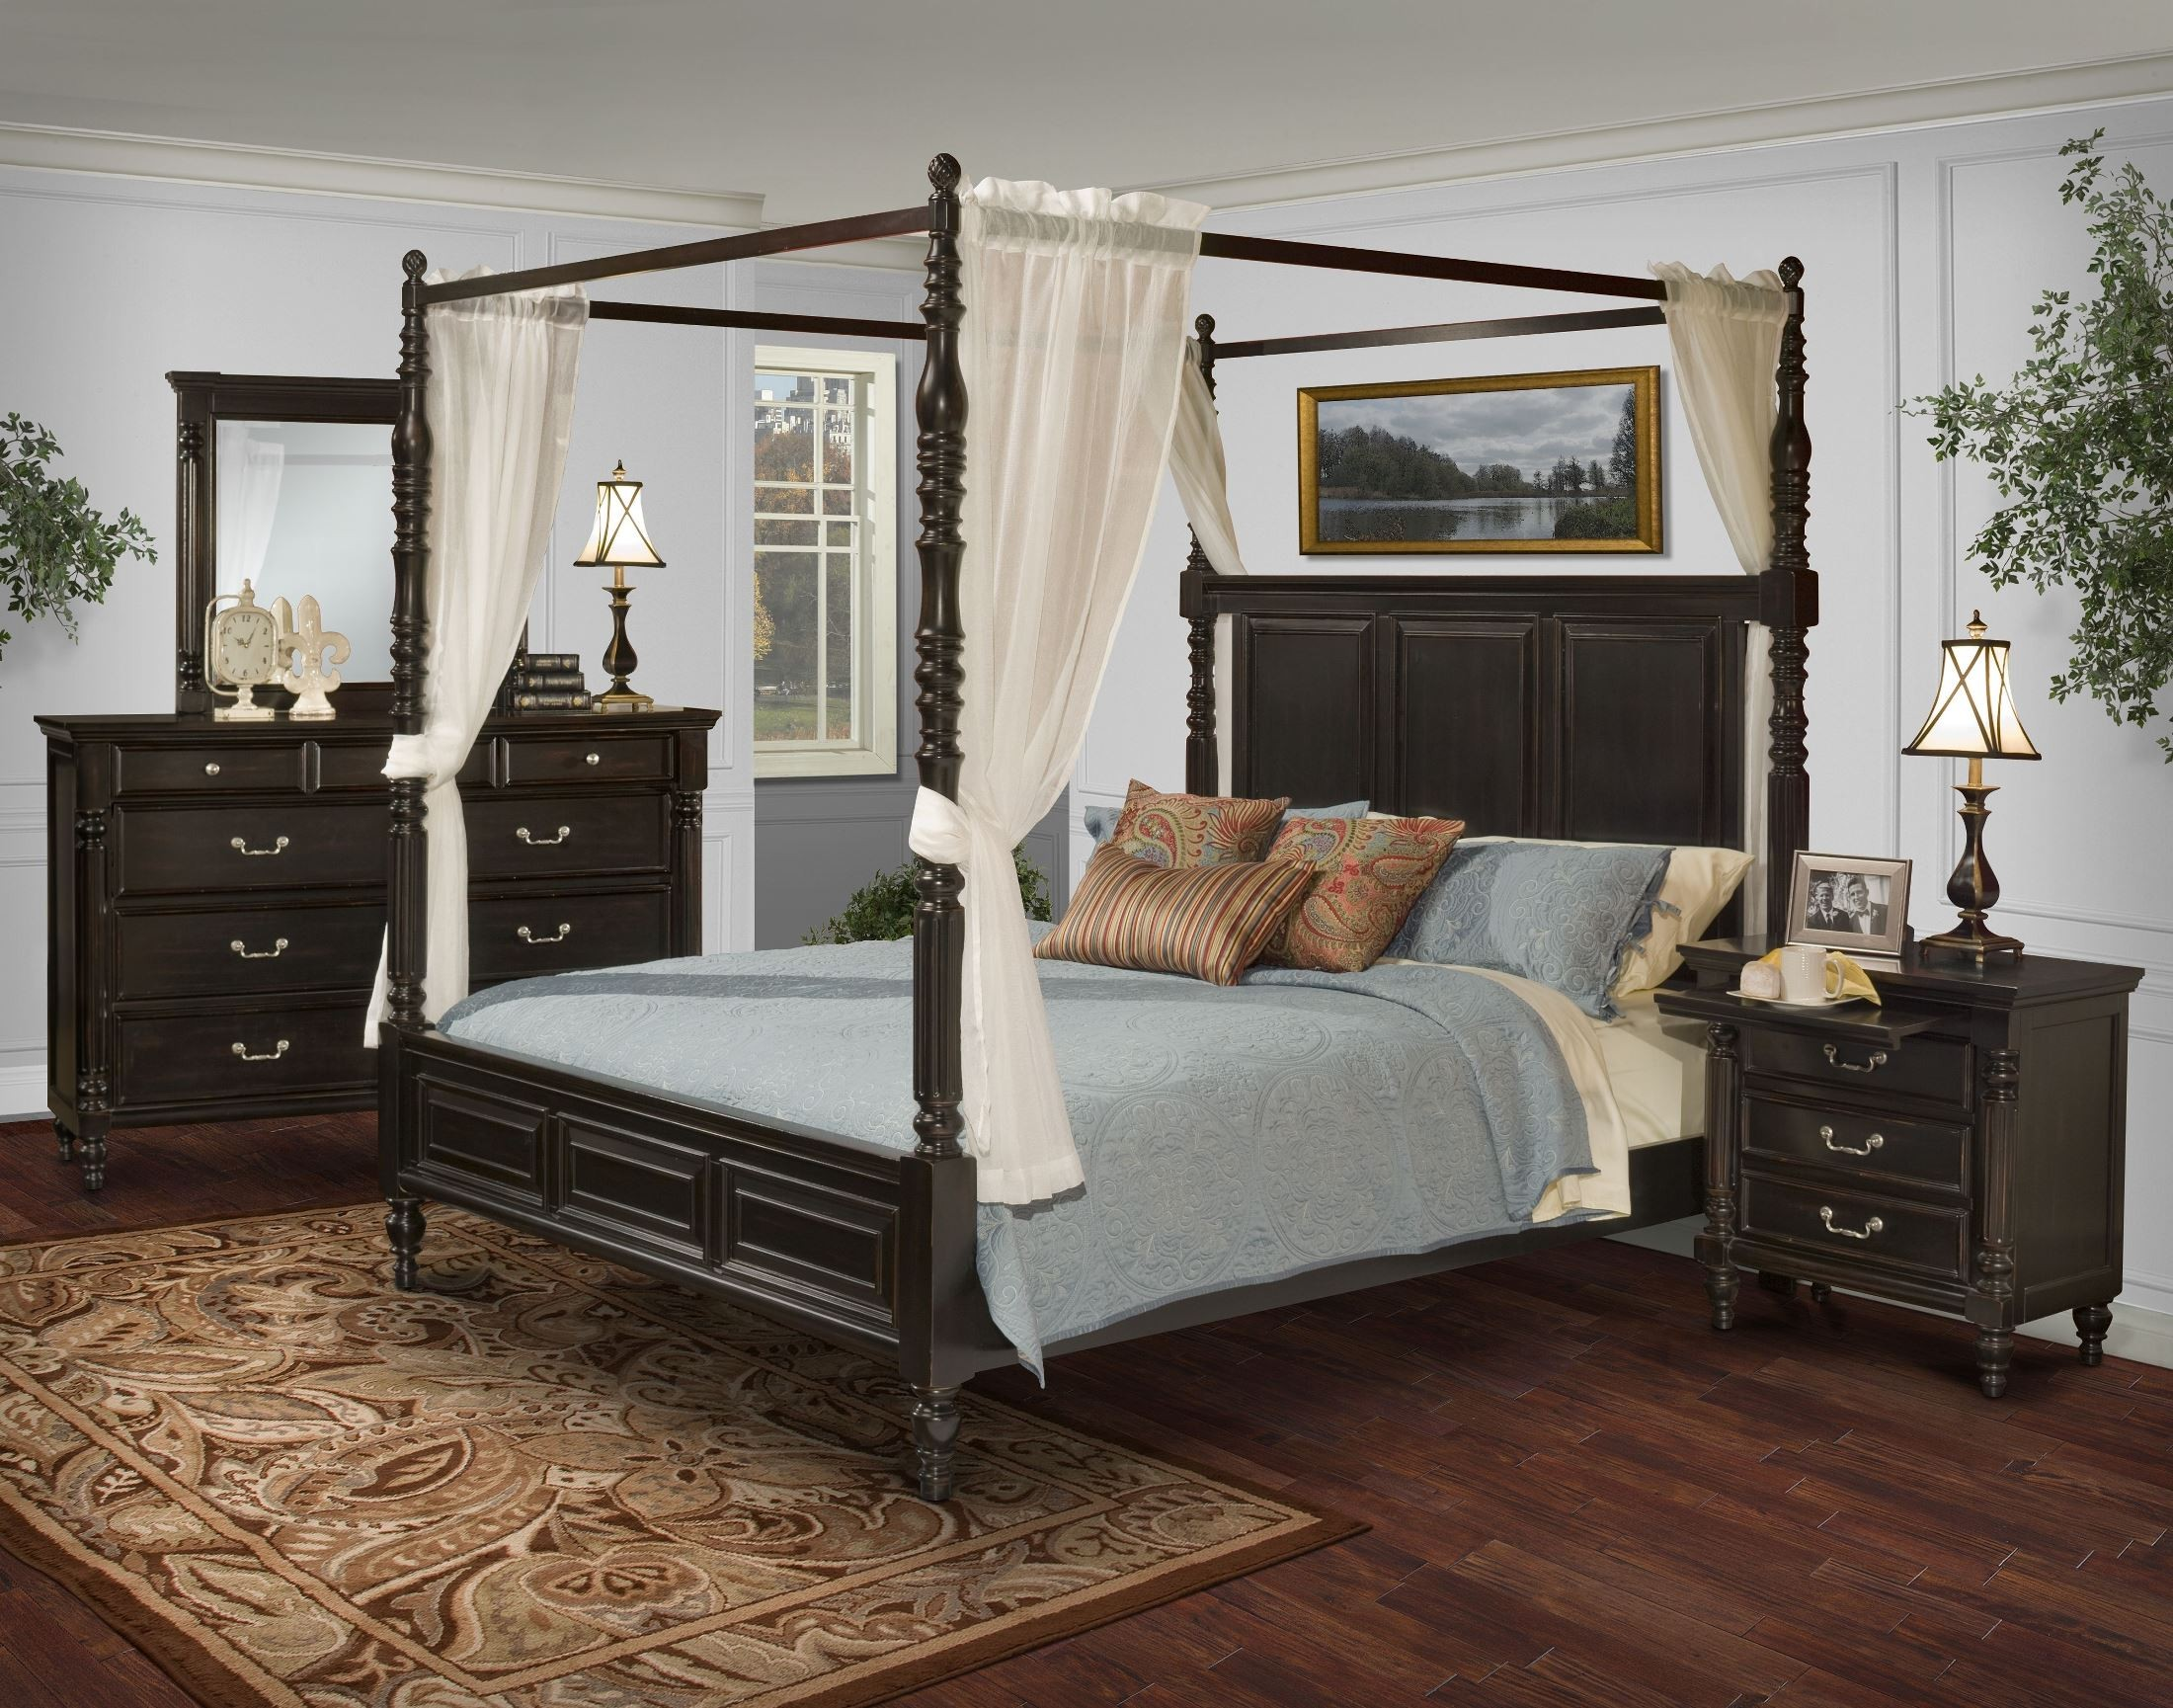 Martinique rubbed black cal king canopy bed with drapes from new classics 00 222 211 231 - Canopy bed sets for sale ...